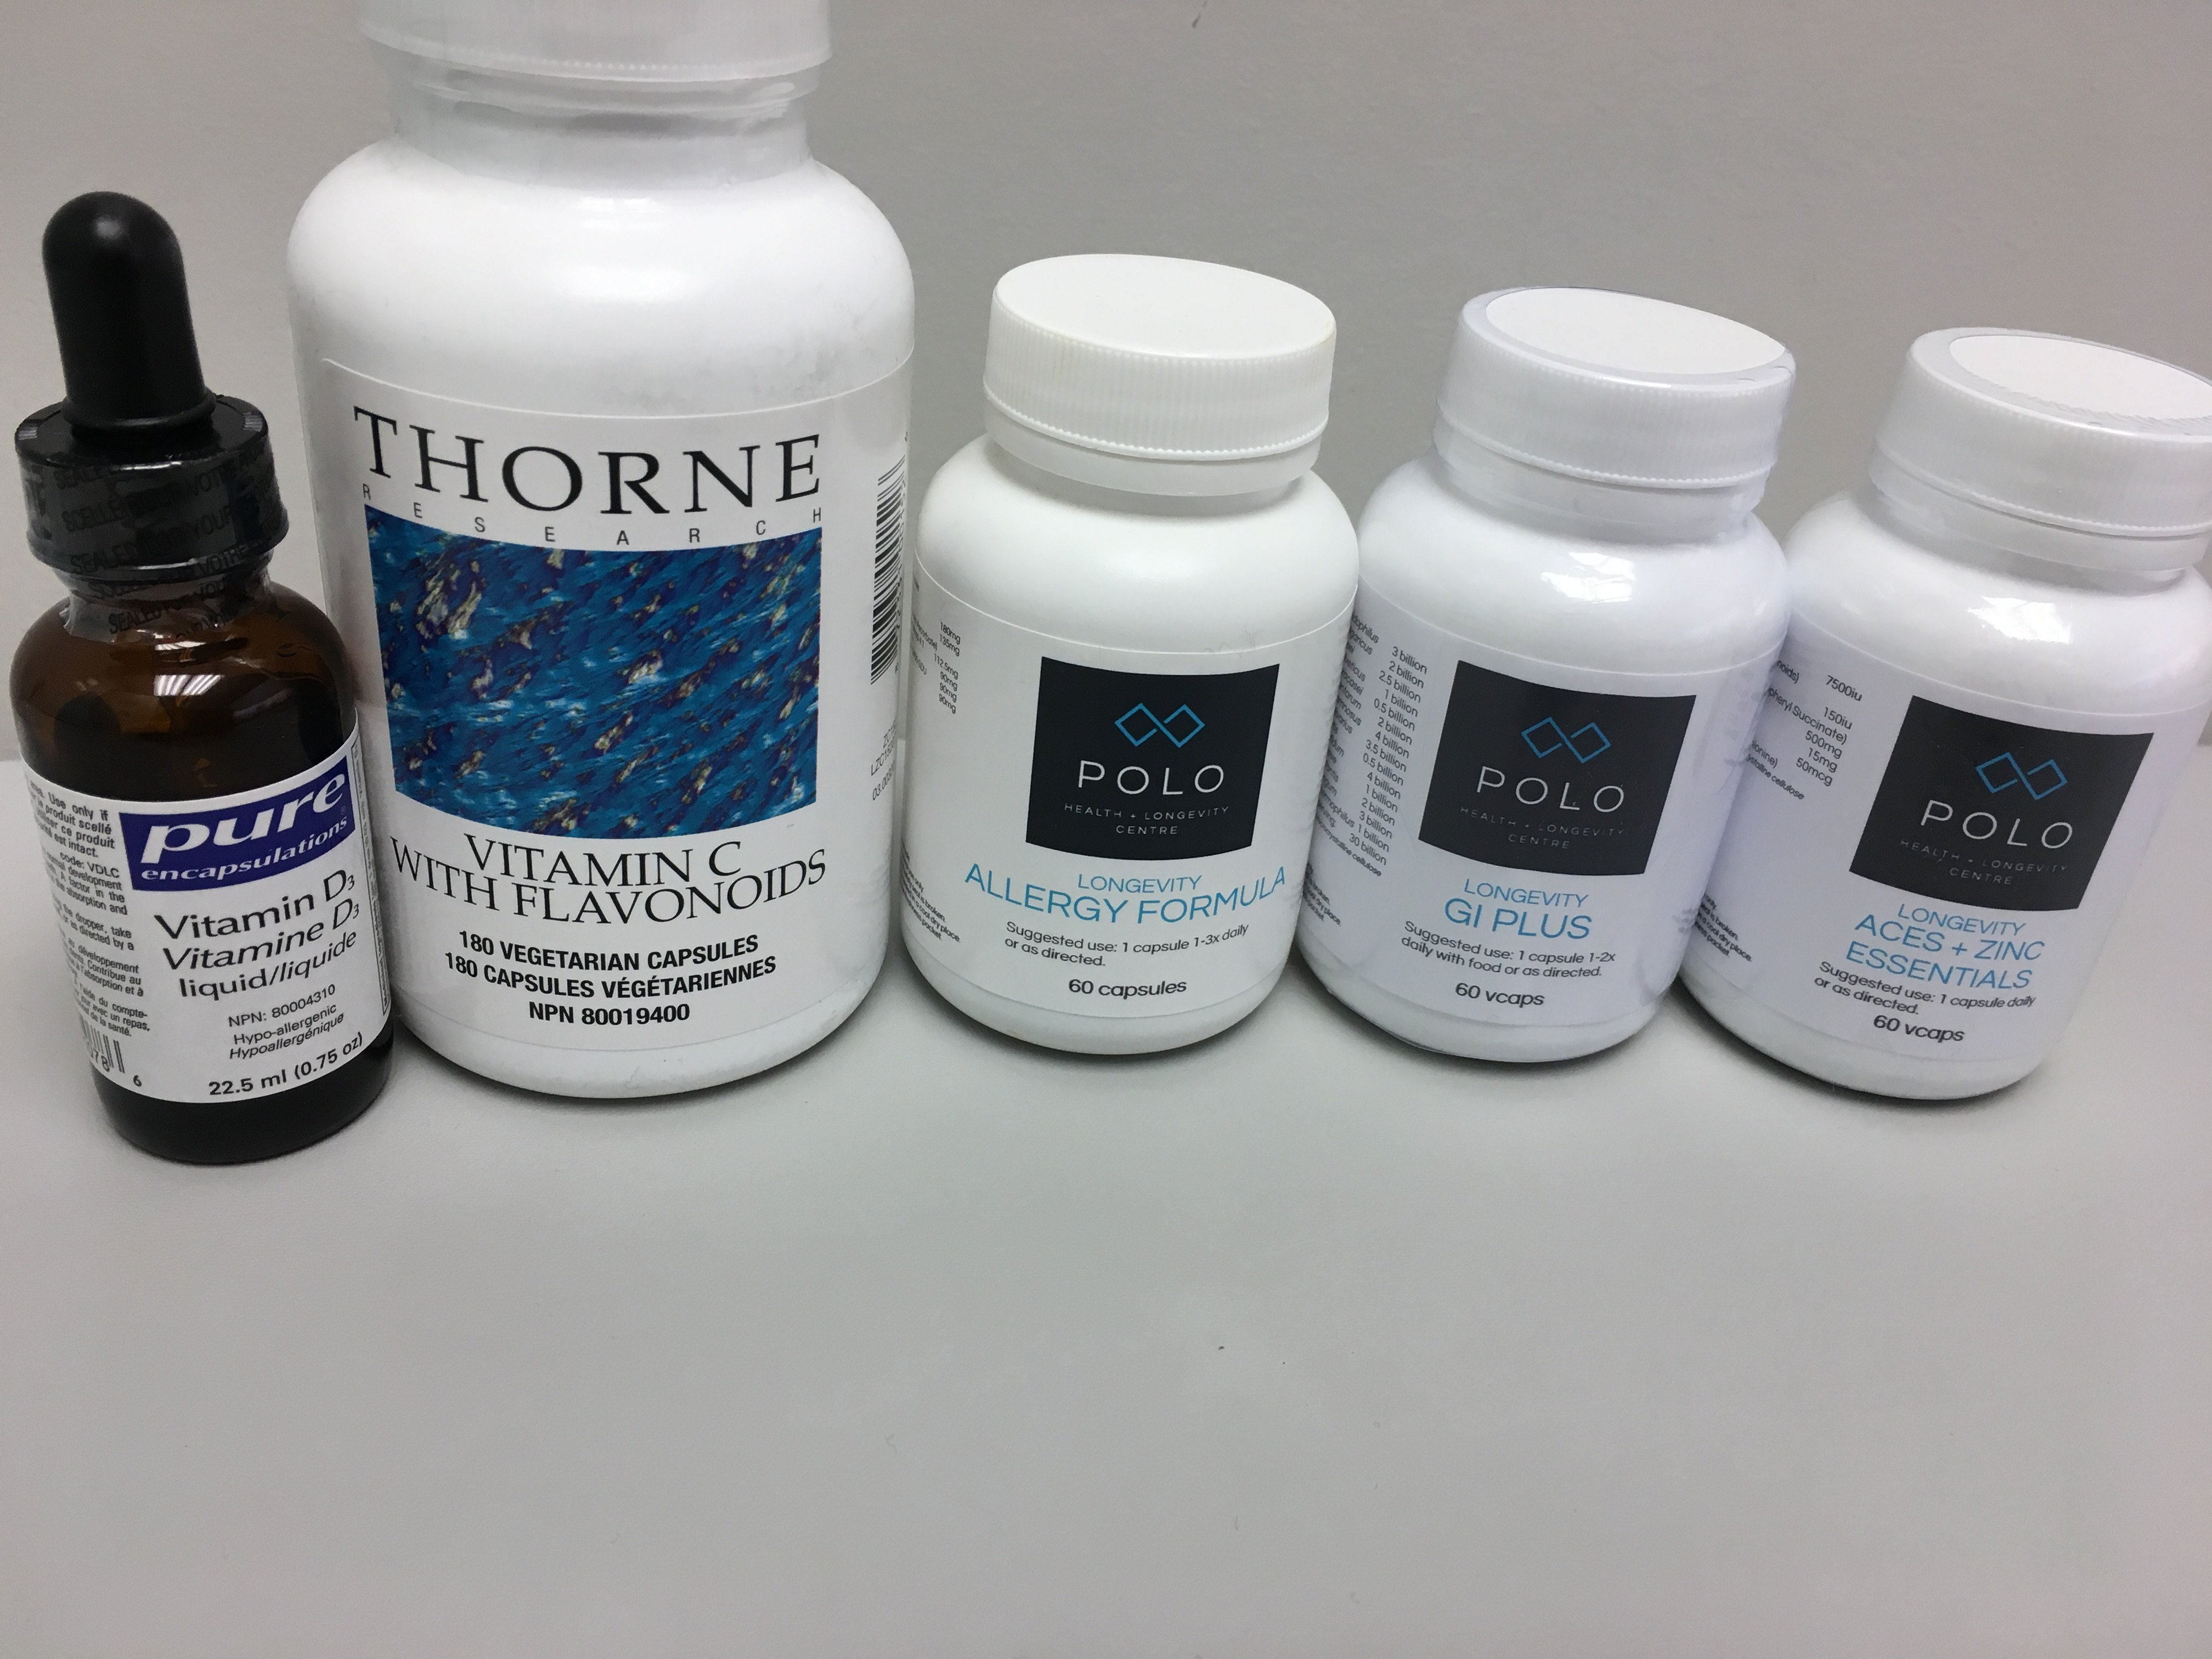 Allergy supplements available at Polo Health